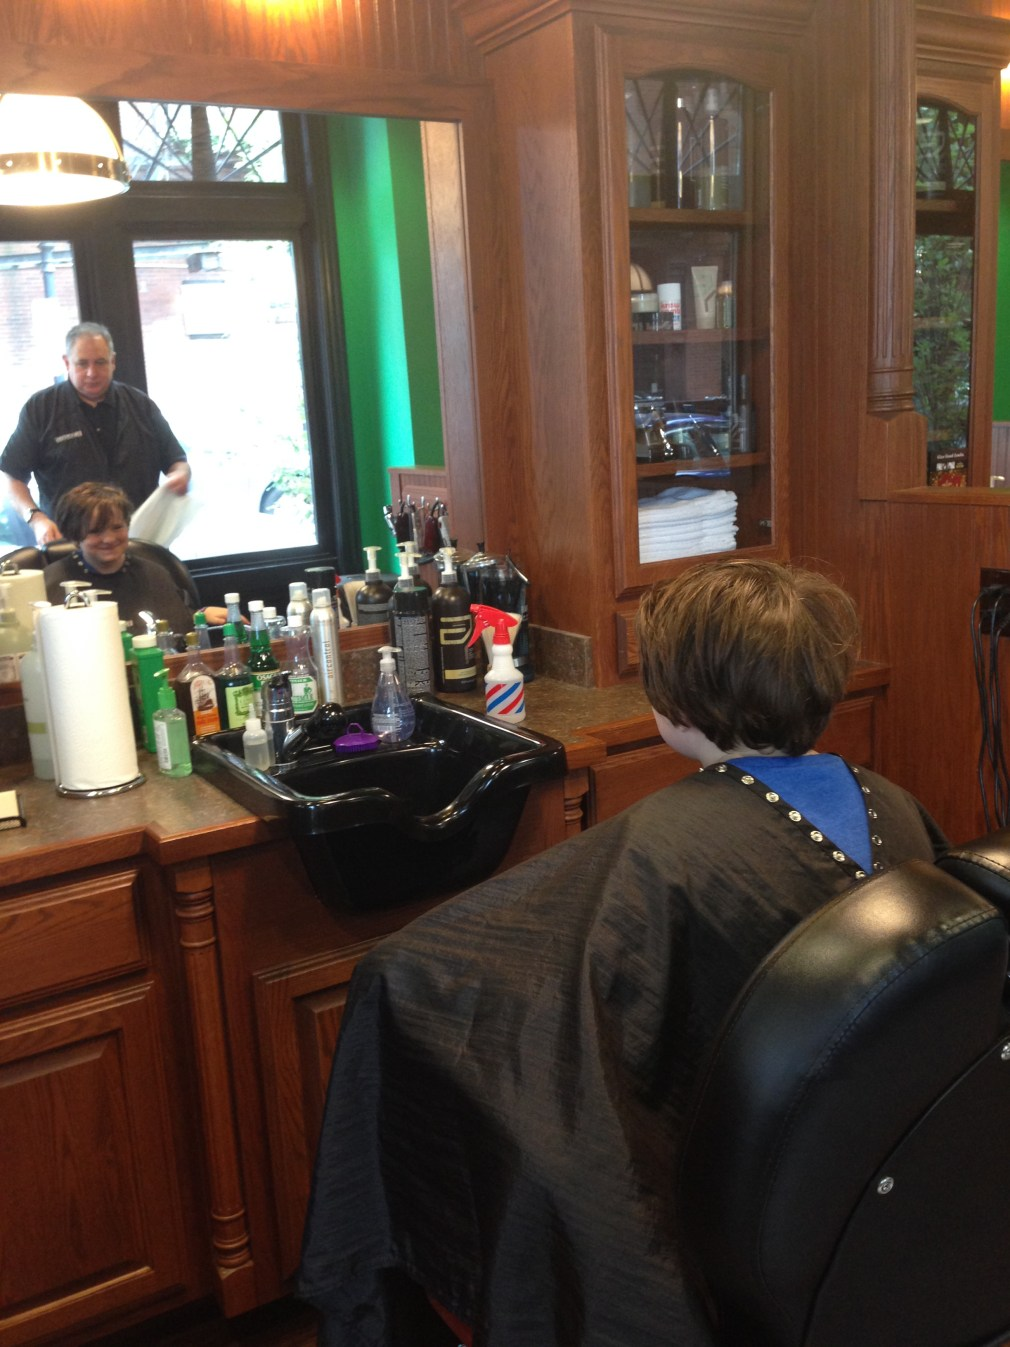 The Back to School haircut at Roosters